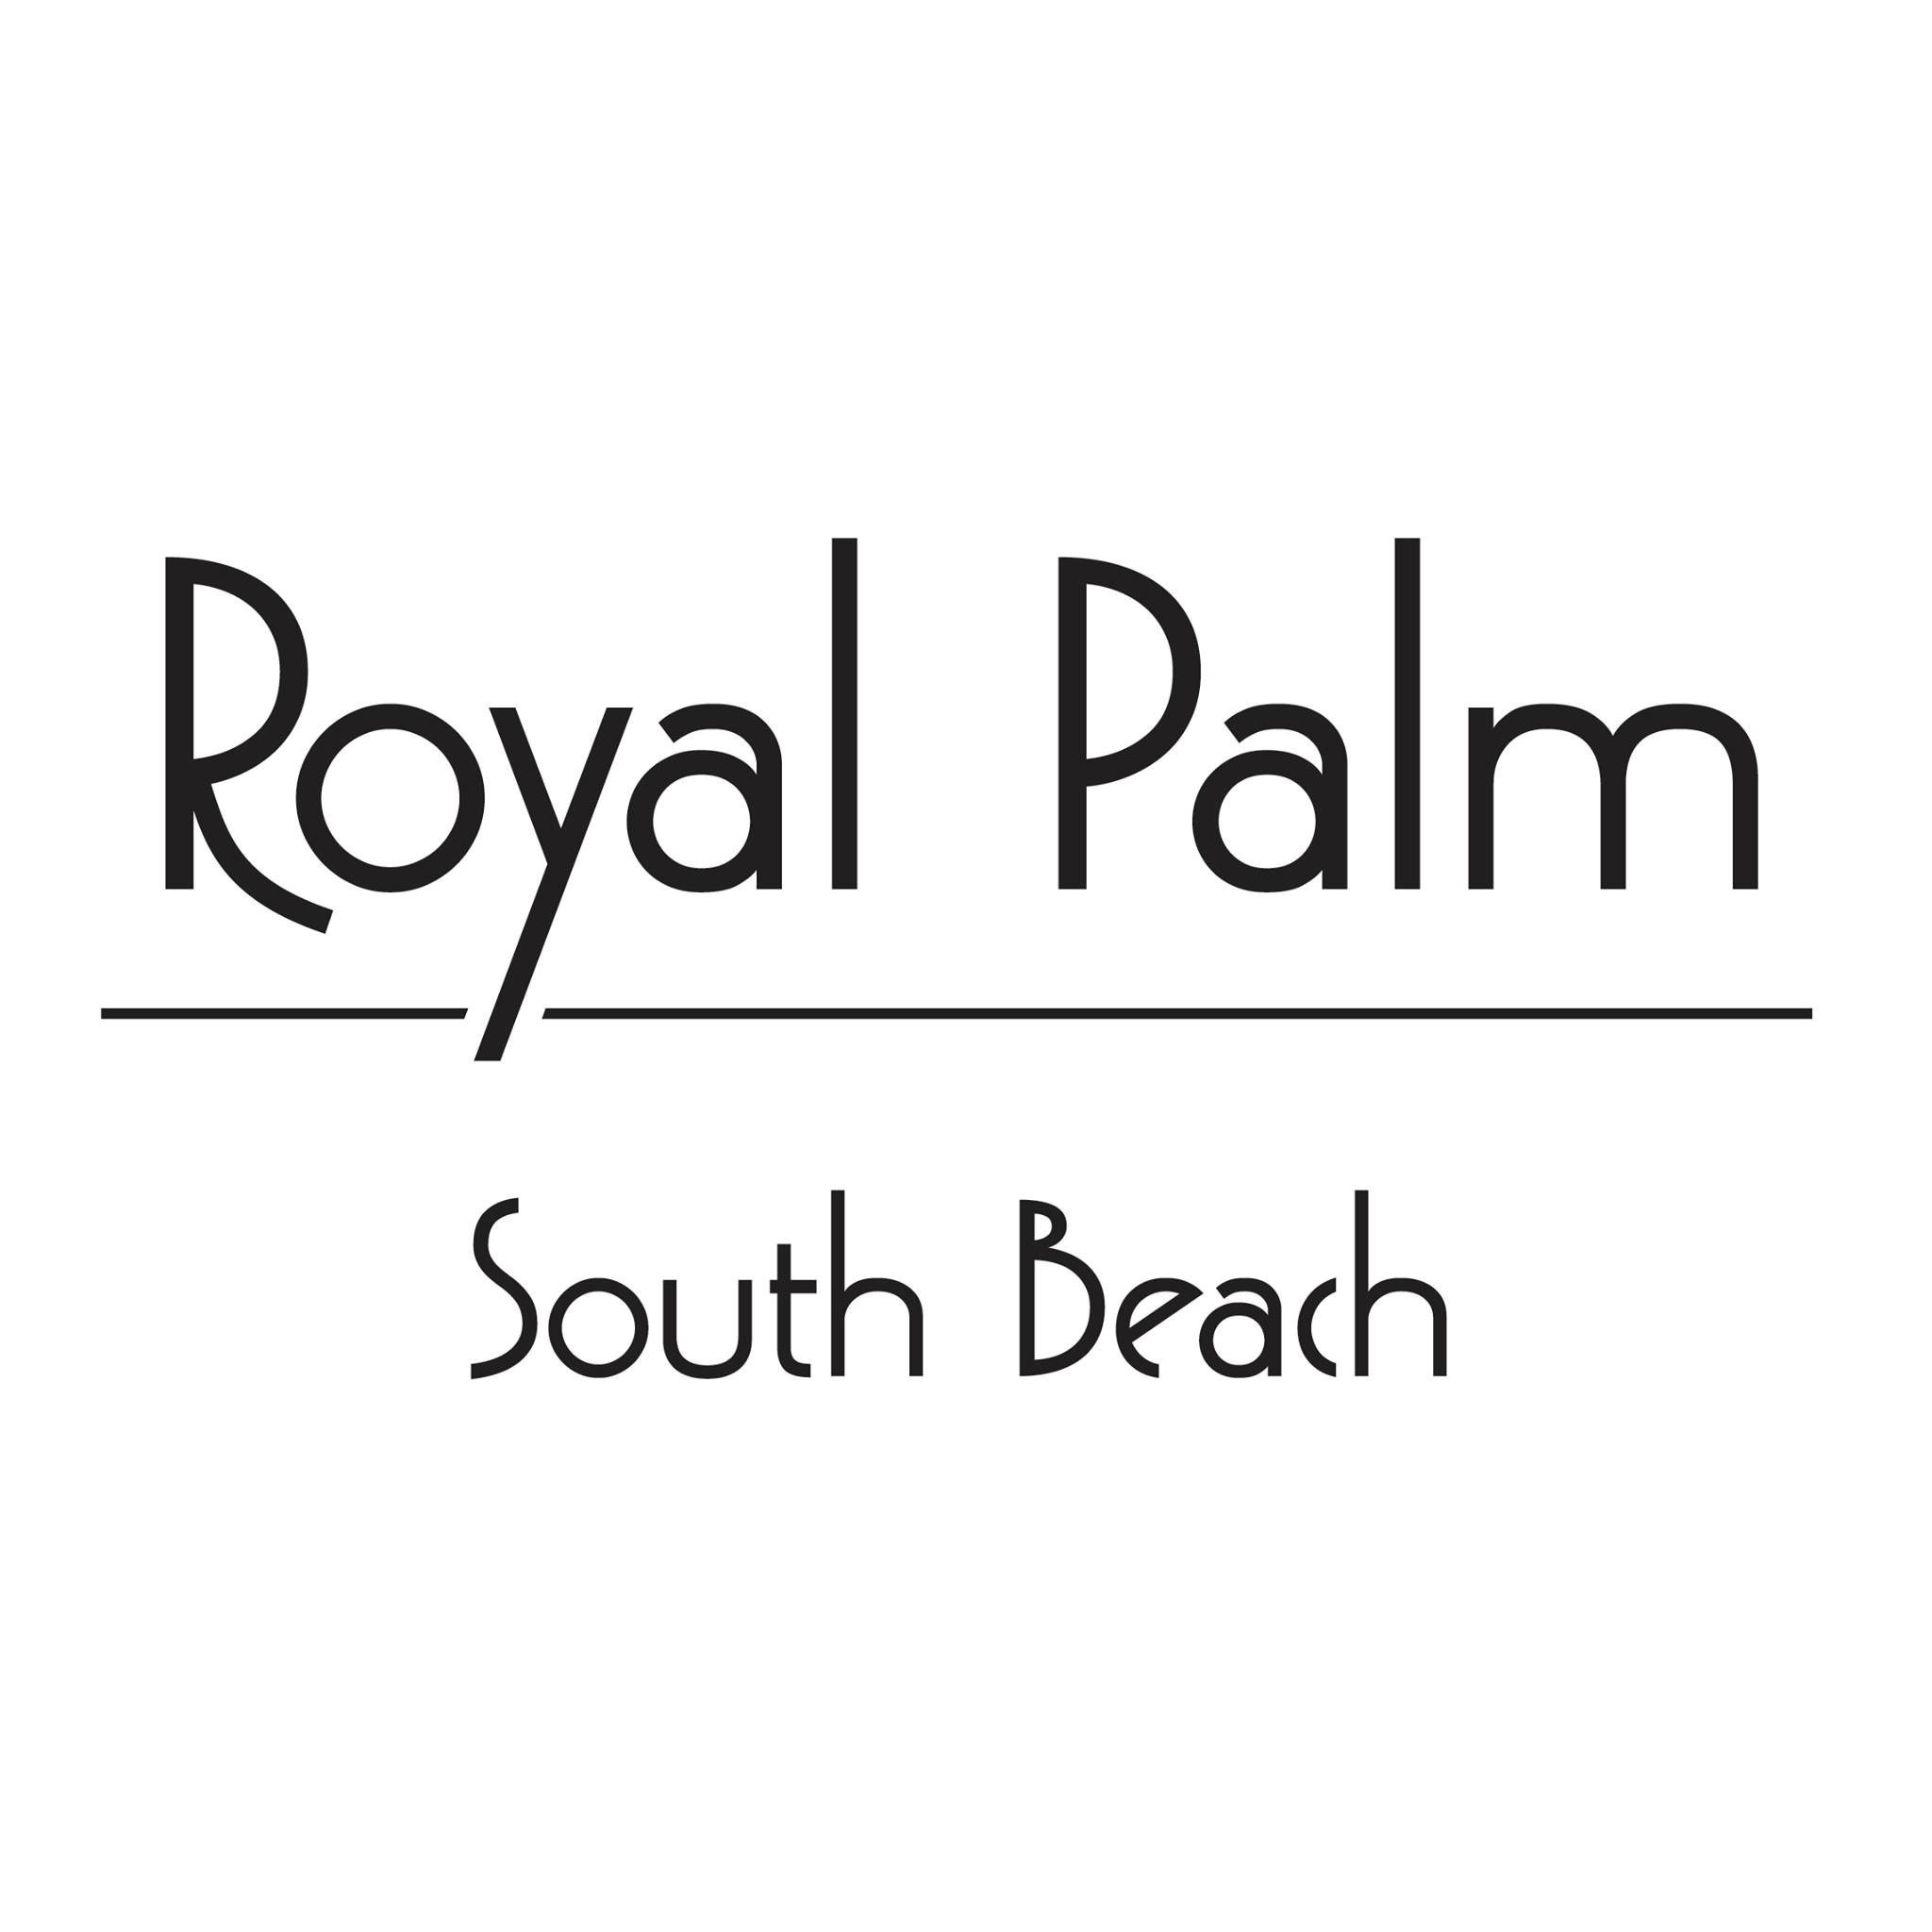 Royal Palm South Beach (2).jpg